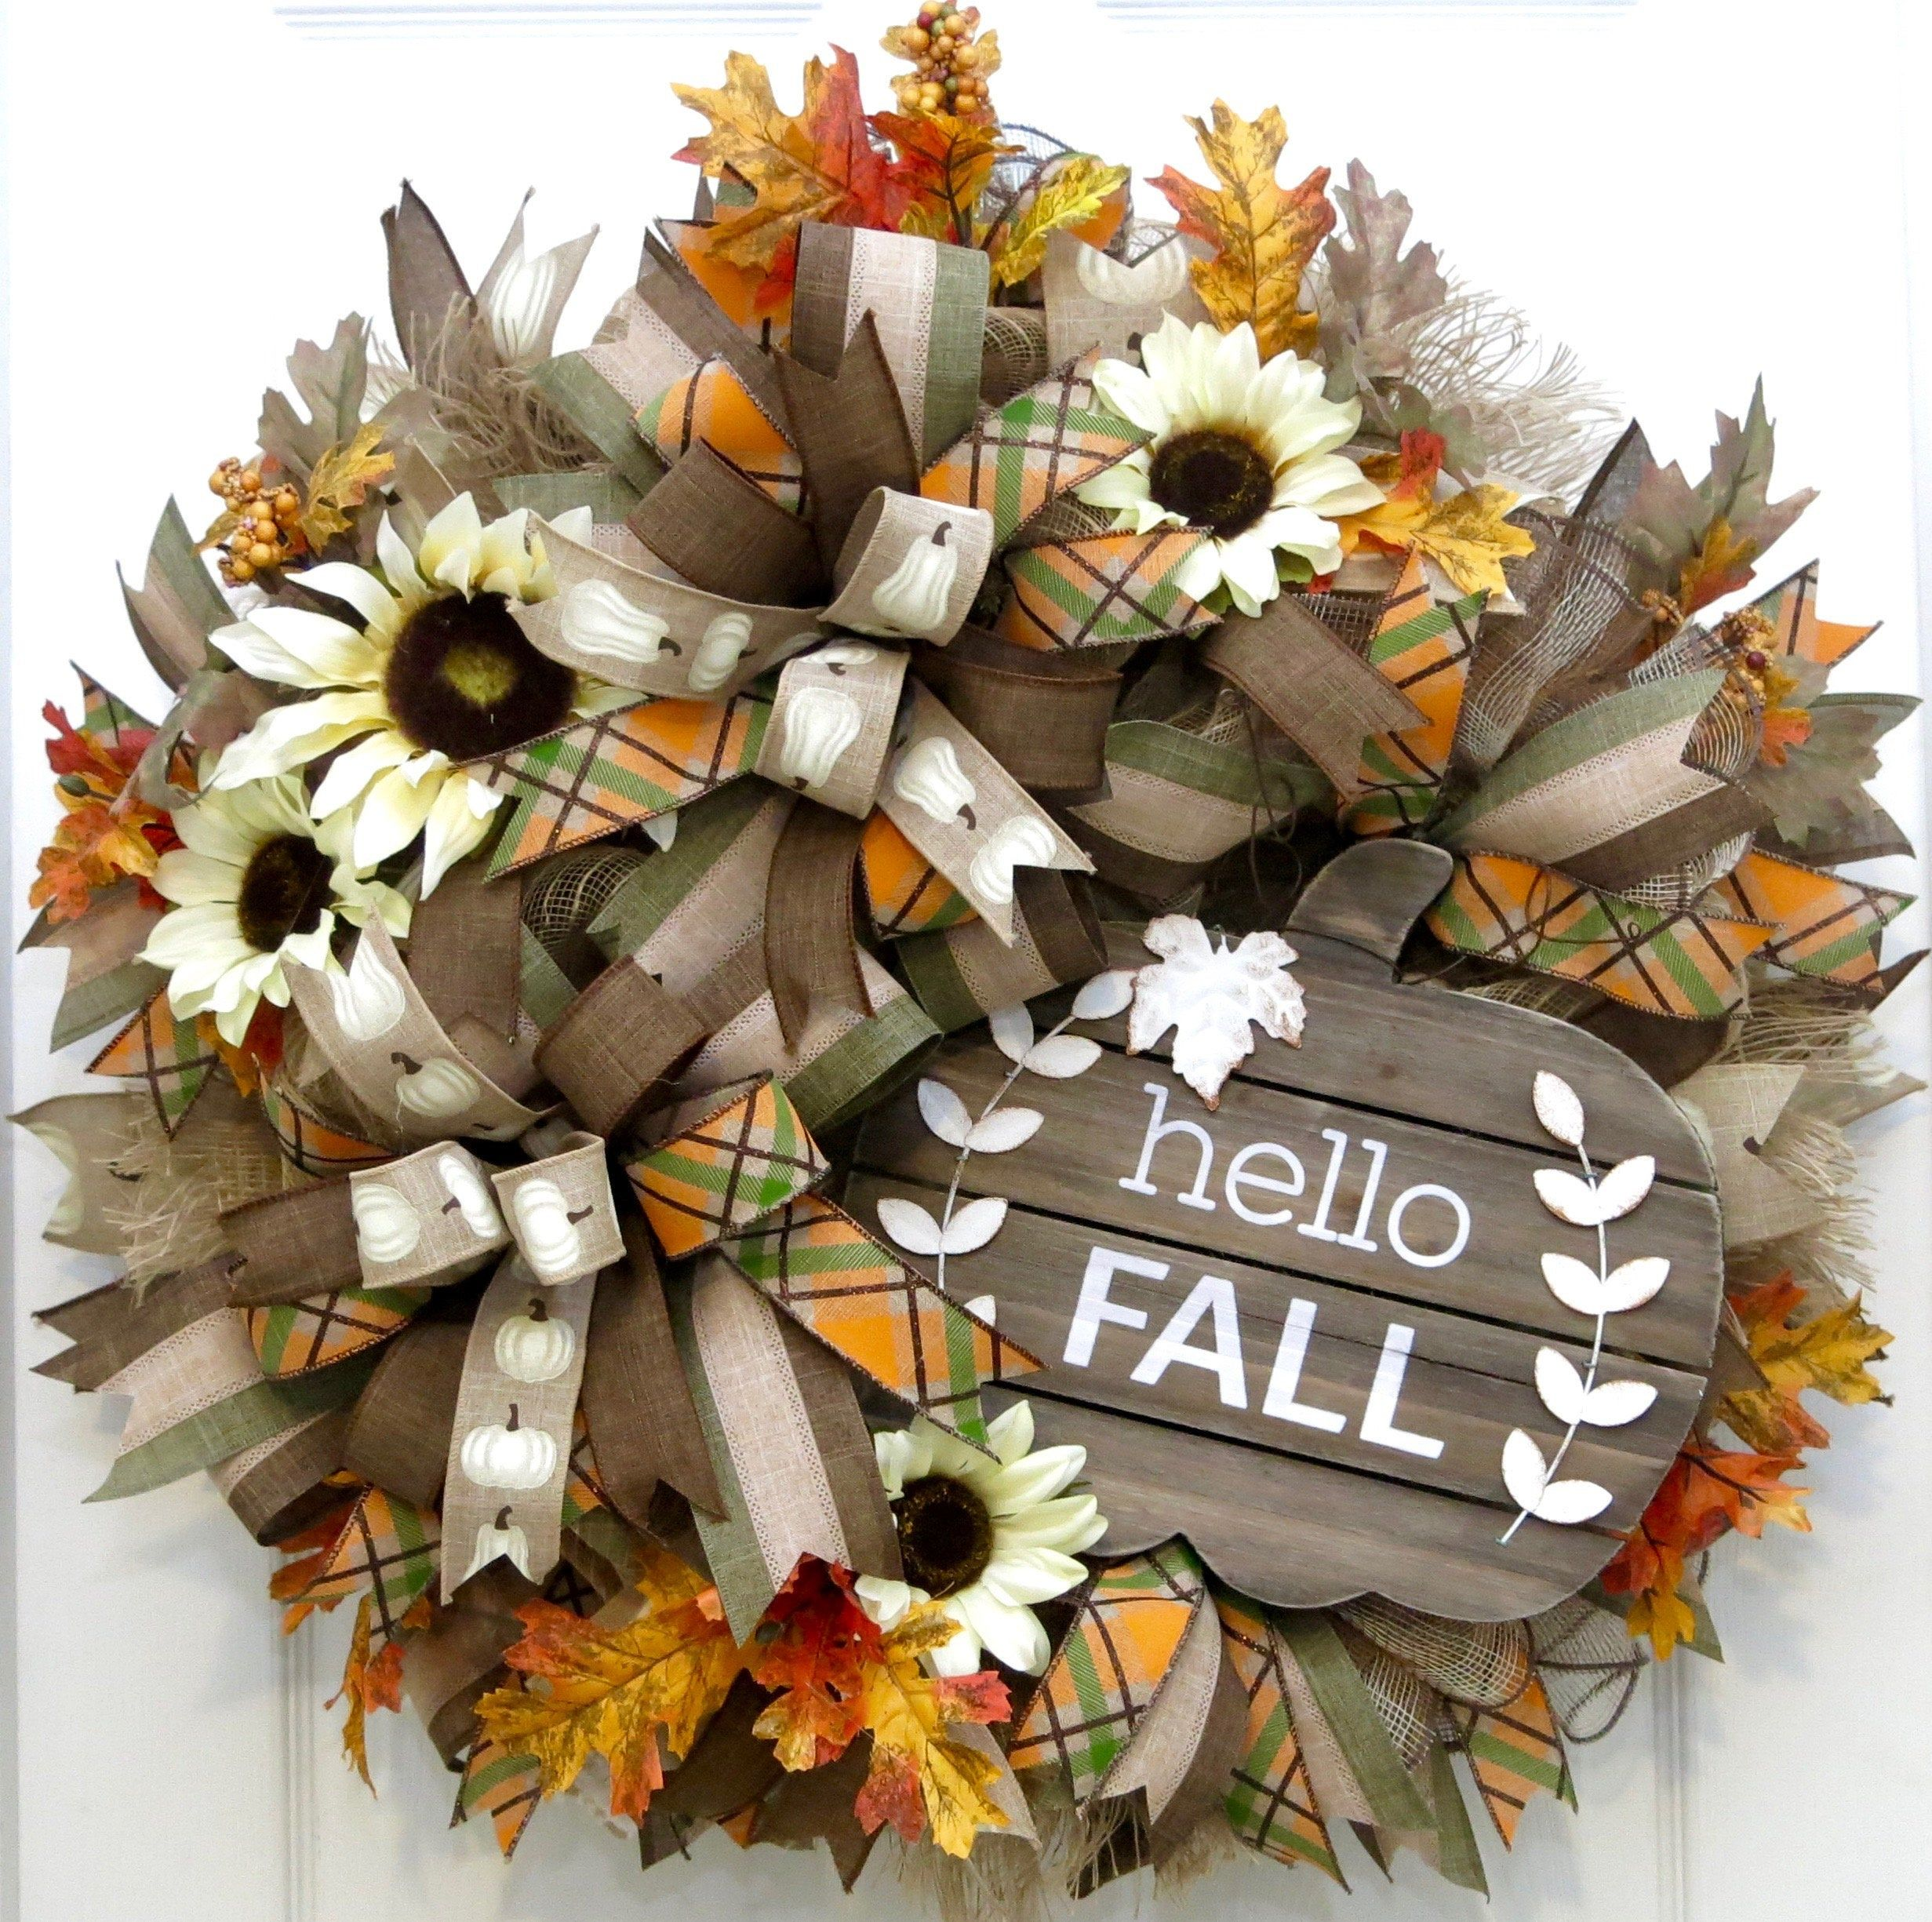 Hello Fall Wreath Rustic Fall Wreaths Fall Front Door Etsy Fall Wreaths Door Wreaths Fall Autumn Wreaths For Front Door